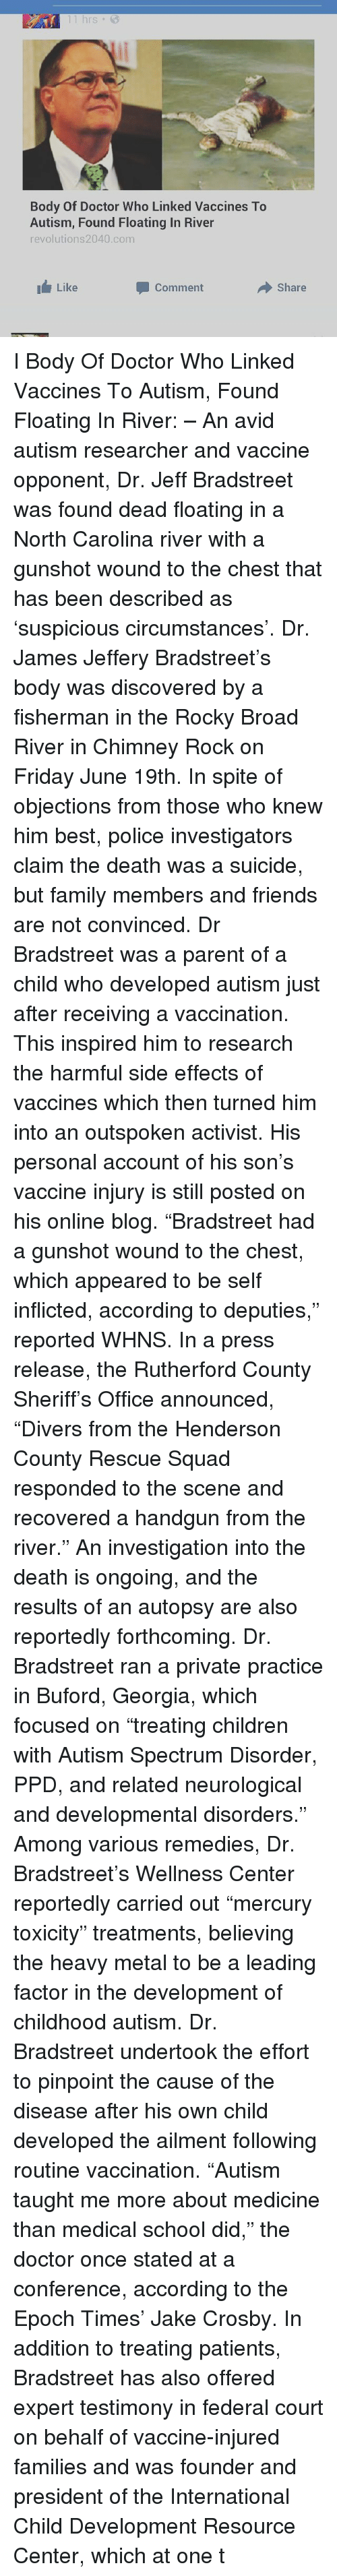 "rutherford: 11 hrs  Body Of Doctor Who Linked Vaccines To  Autism, Found Floating In River  revolutions2040 com  Like  Comment  Share I Body Of Doctor Who Linked Vaccines To Autism, Found Floating In River: – An avid autism researcher and vaccine opponent, Dr. Jeff Bradstreet was found dead floating in a North Carolina river with a gunshot wound to the chest that has been described as 'suspicious circumstances'. Dr. James Jeffery Bradstreet's body was discovered by a fisherman in the Rocky Broad River in Chimney Rock on Friday June 19th. In spite of objections from those who knew him best, police investigators claim the death was a suicide, but family members and friends are not convinced. Dr Bradstreet was a parent of a child who developed autism just after receiving a vaccination. This inspired him to research the harmful side effects of vaccines which then turned him into an outspoken activist. His personal account of his son's vaccine injury is still posted on his online blog. ""Bradstreet had a gunshot wound to the chest, which appeared to be self inflicted, according to deputies,"" reported WHNS. In a press release, the Rutherford County Sheriff's Office announced, ""Divers from the Henderson County Rescue Squad responded to the scene and recovered a handgun from the river."" An investigation into the death is ongoing, and the results of an autopsy are also reportedly forthcoming. Dr. Bradstreet ran a private practice in Buford, Georgia, which focused on ""treating children with Autism Spectrum Disorder, PPD, and related neurological and developmental disorders."" Among various remedies, Dr. Bradstreet's Wellness Center reportedly carried out ""mercury toxicity"" treatments, believing the heavy metal to be a leading factor in the development of childhood autism. Dr. Bradstreet undertook the effort to pinpoint the cause of the disease after his own child developed the ailment following routine vaccination. ""Autism taught me more about medicine than medical school did,"" the doctor once stated at a conference, according to the Epoch Times' Jake Crosby. In addition to treating patients, Bradstreet has also offered expert testimony in federal court on behalf of vaccine-injured families and was founder and president of the International Child Development Resource Center, which at one t"